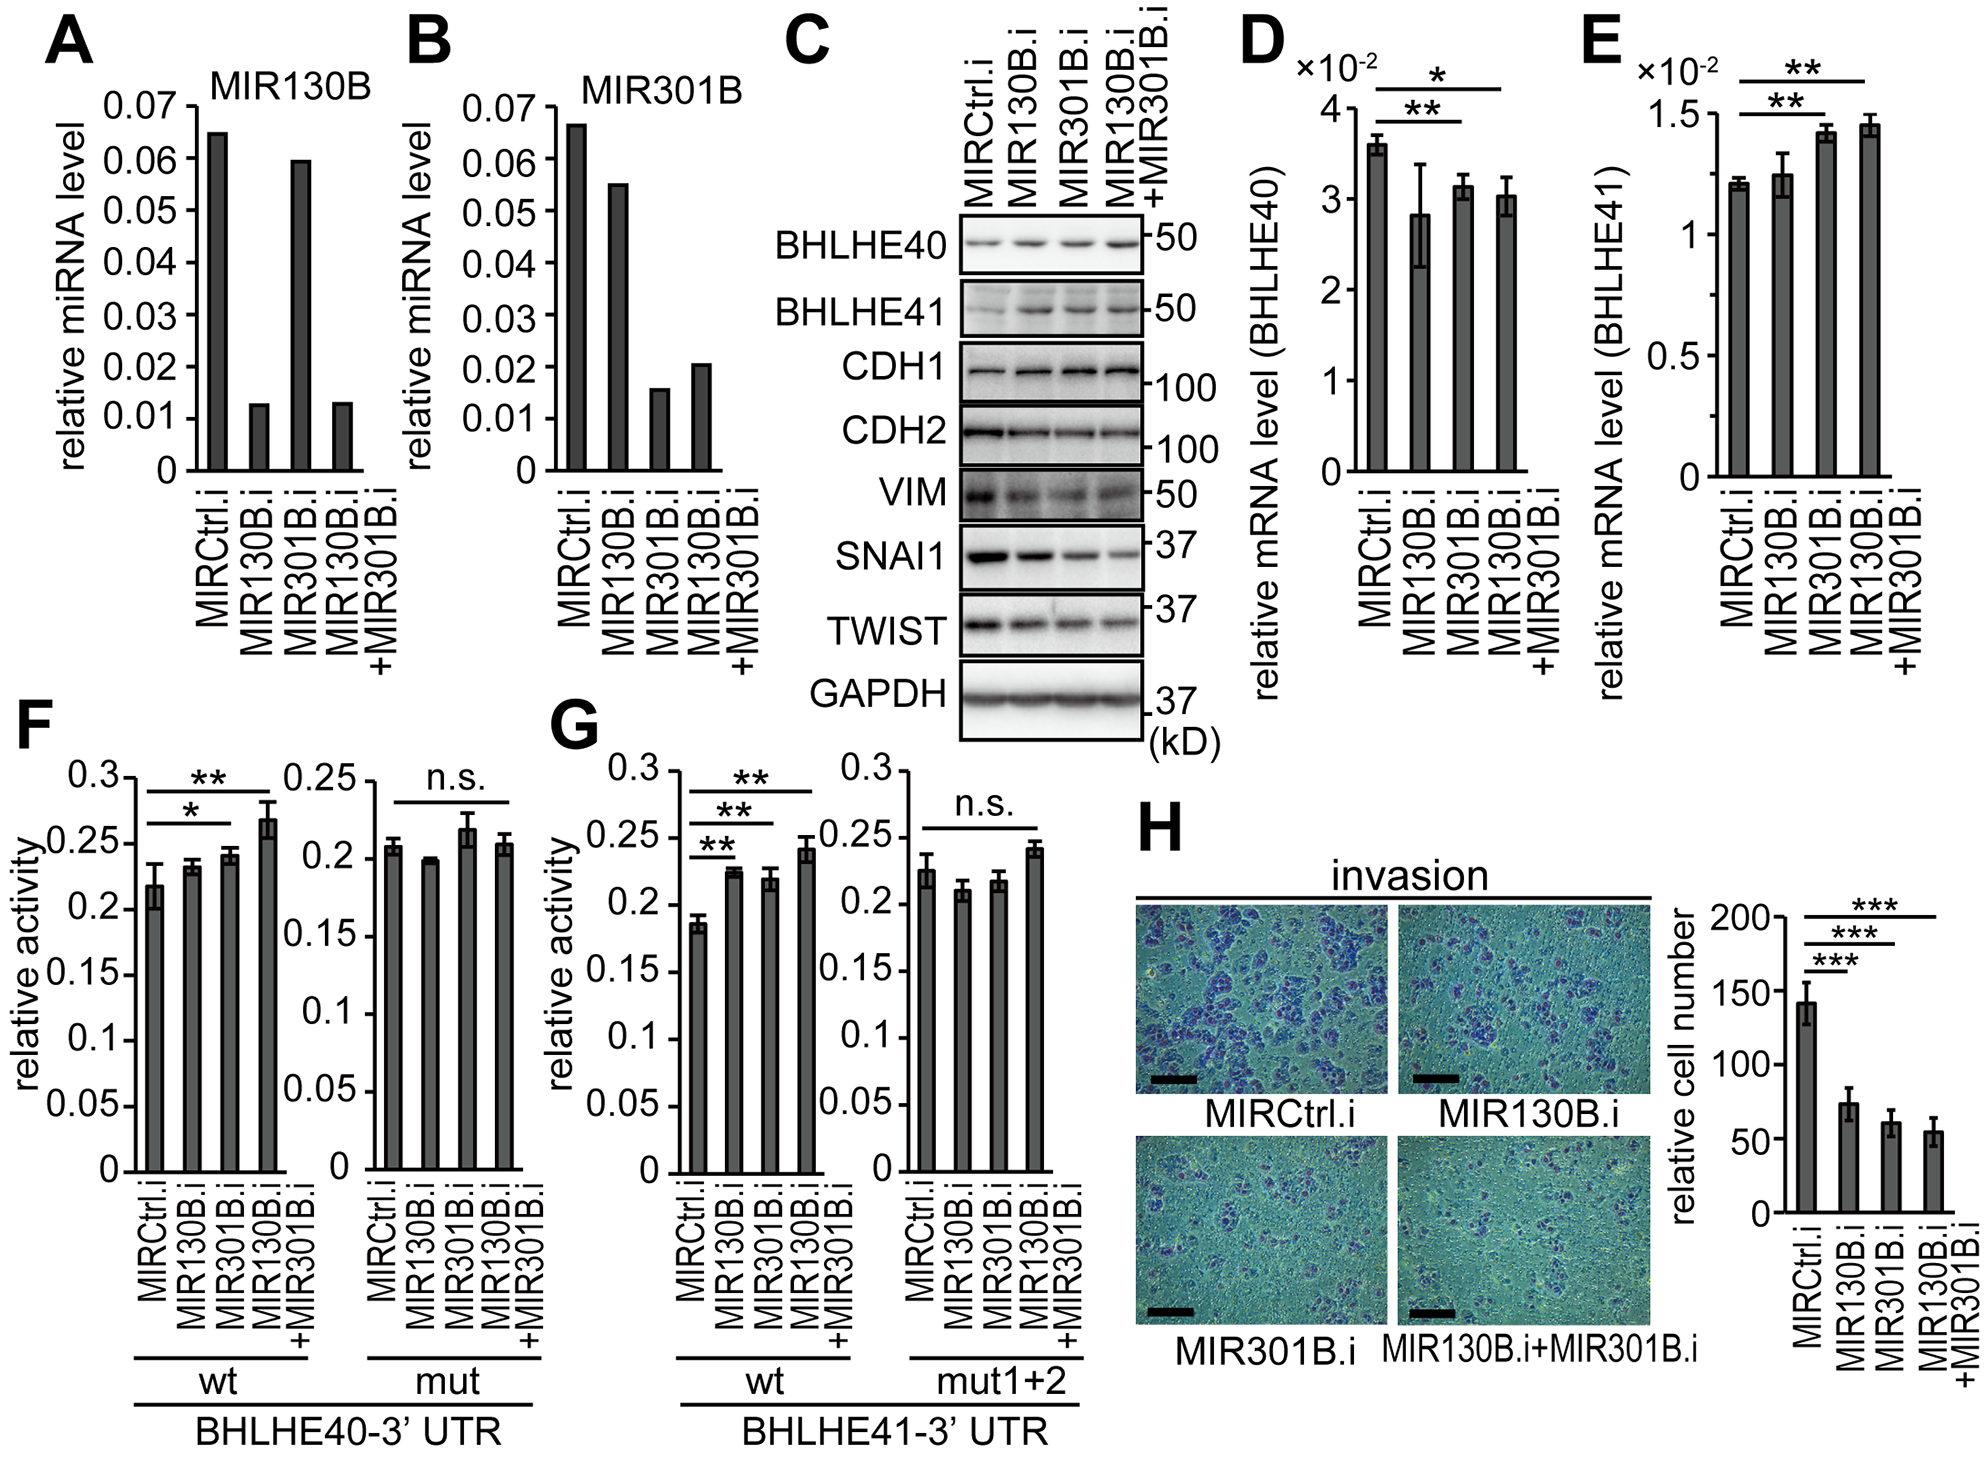 Inhibition of MIR130B and MIR301B enhanced the protein expression of BHLH40/41 and suppressed EMT in EC cells